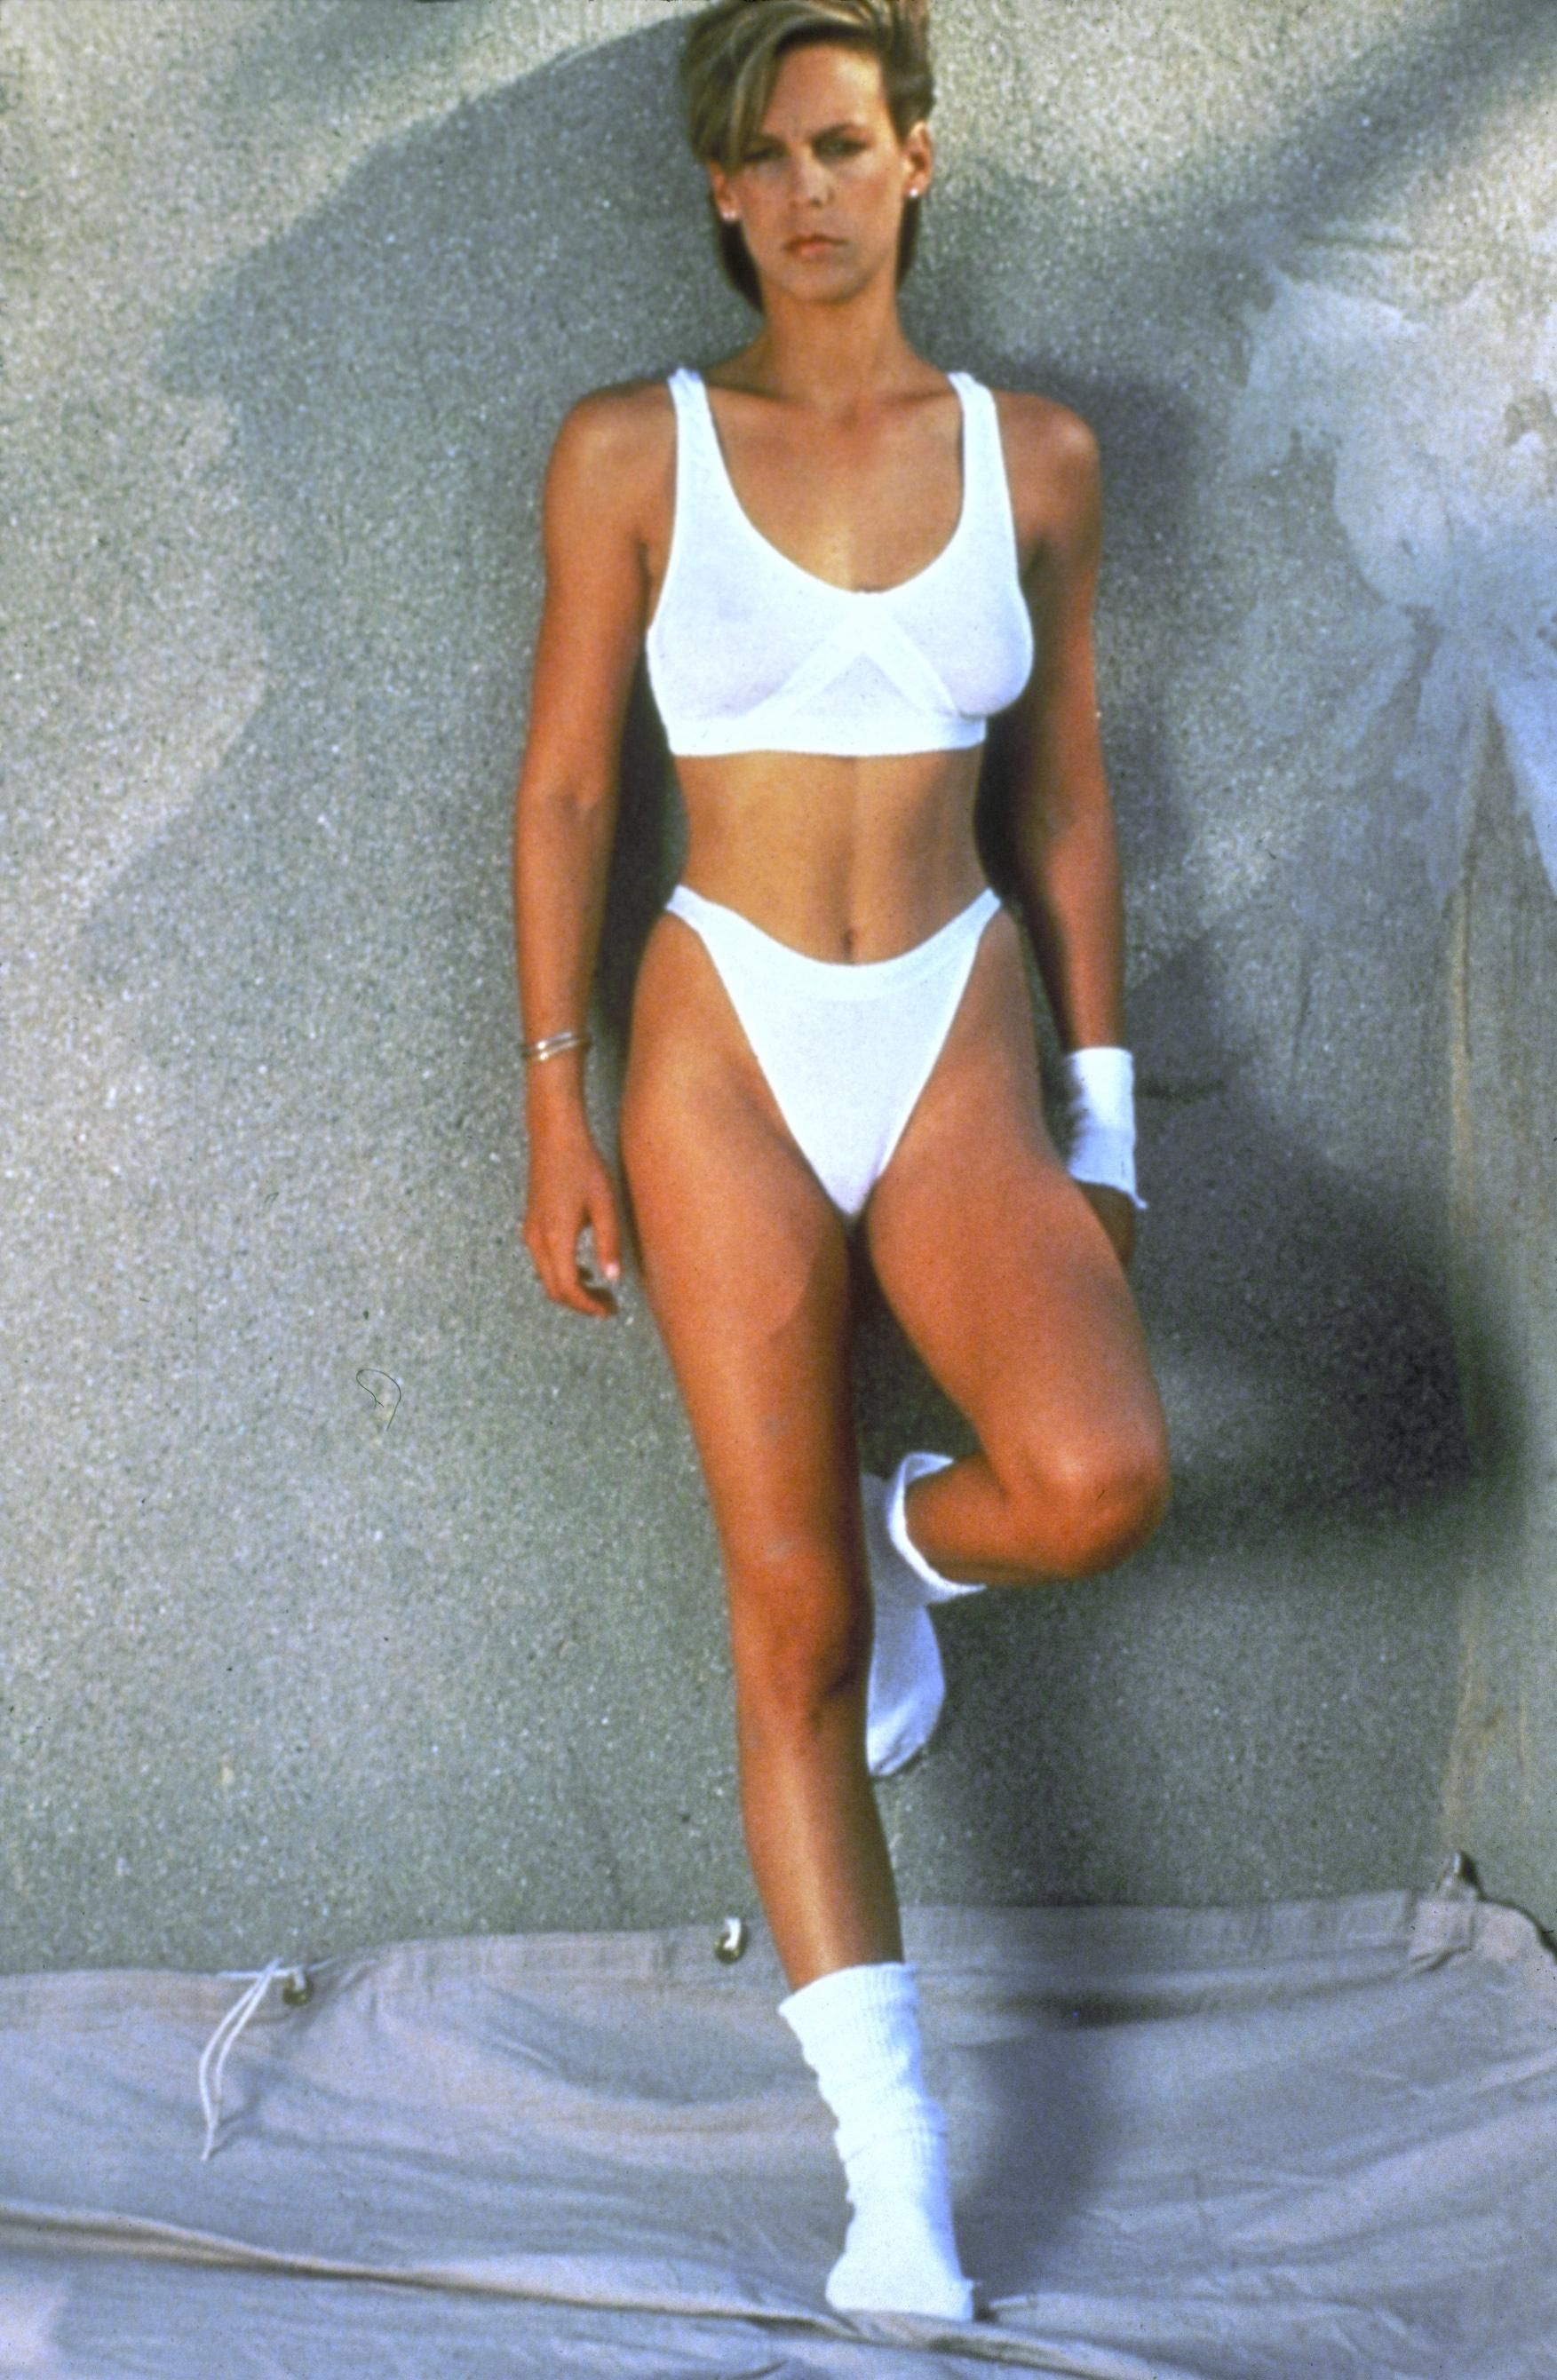 Jamie Lee Curtis Halloween 2020 Body Google Image Result for https://.thesun.co.uk/wp content